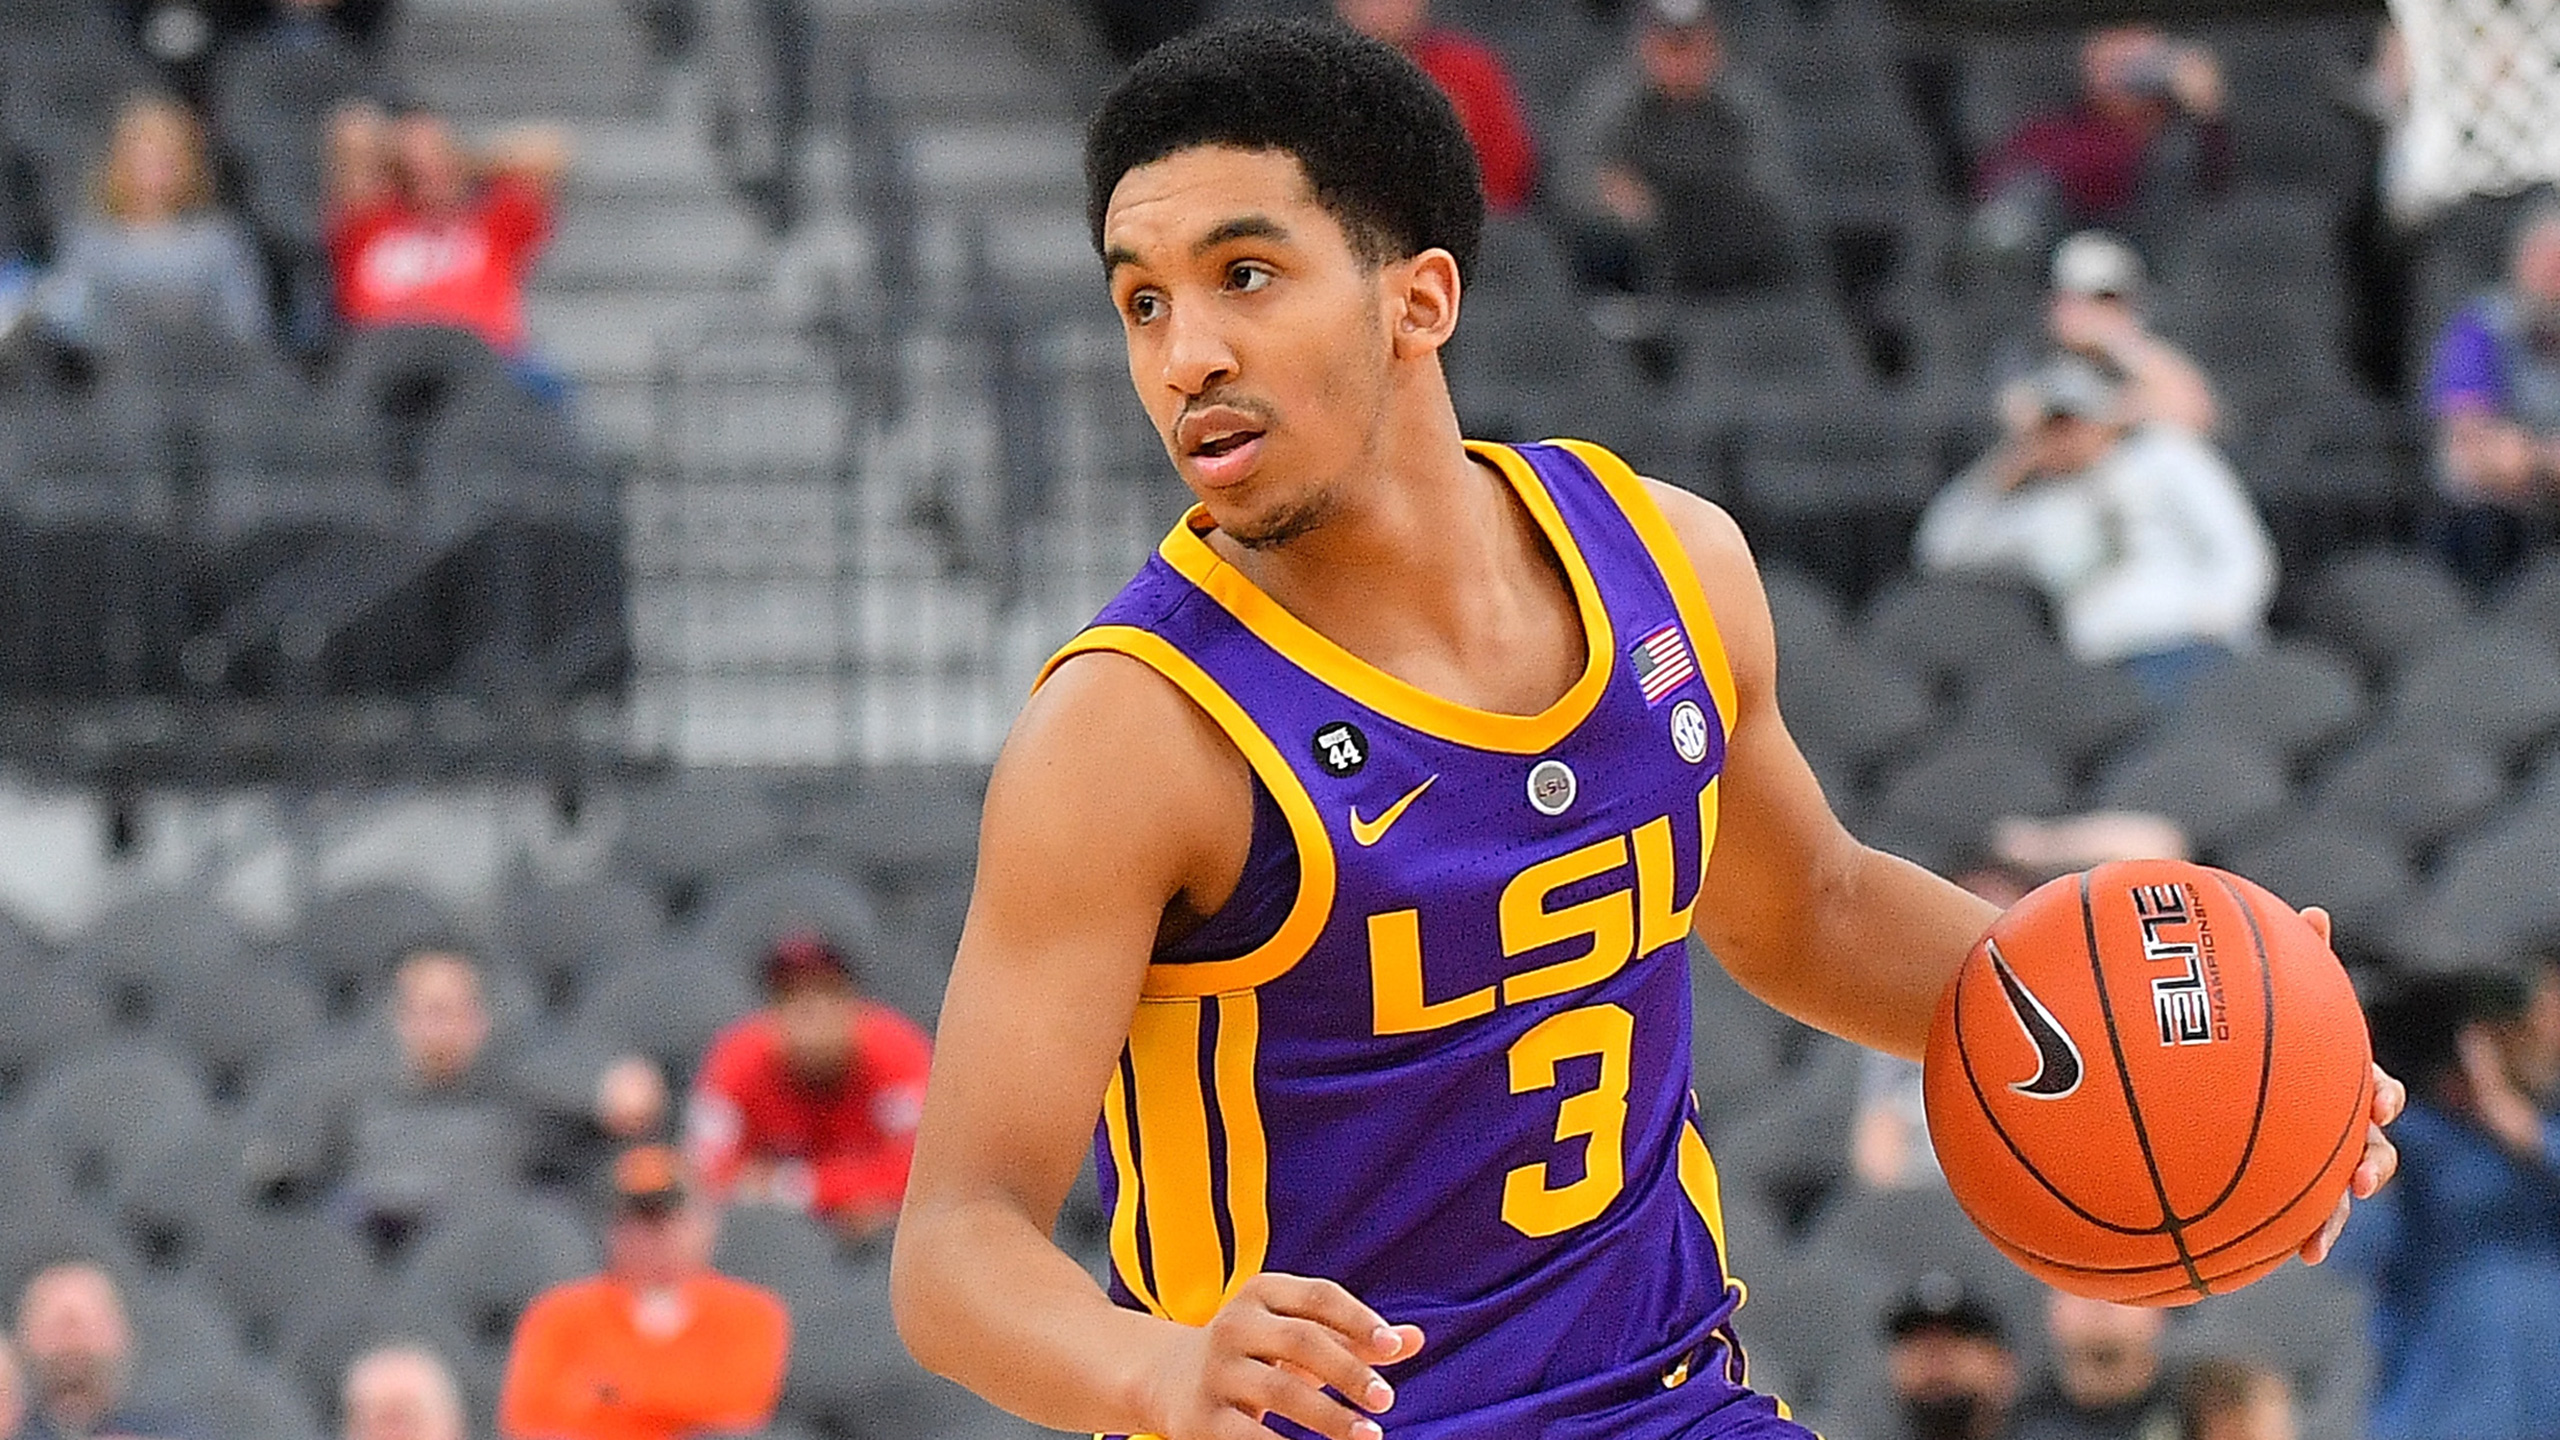 #19 LSU vs. Georgia (M Basketball)